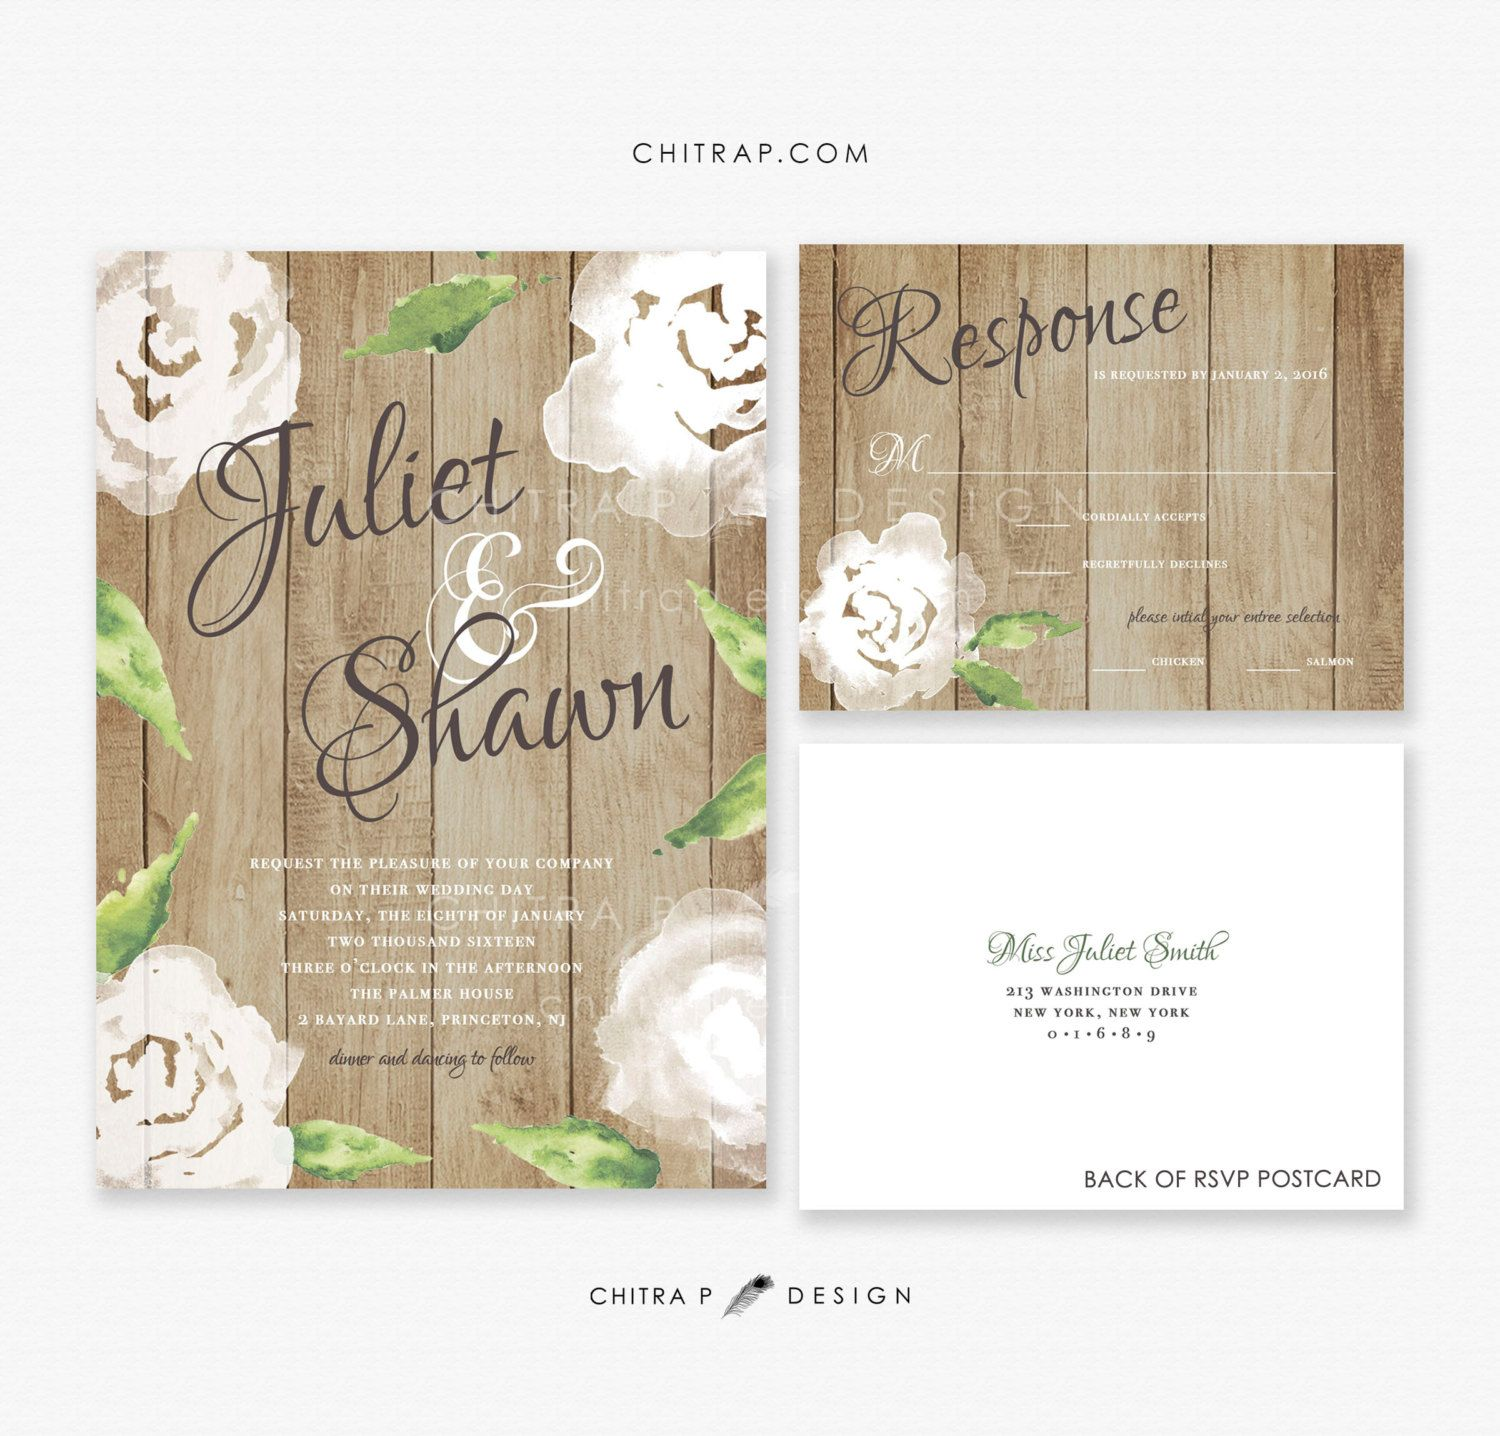 Wedding Invitations With Rsvp Cards Included : Wedding Invitations And Rsvp  Cards Package   Superb Invitation   Superb Invitation